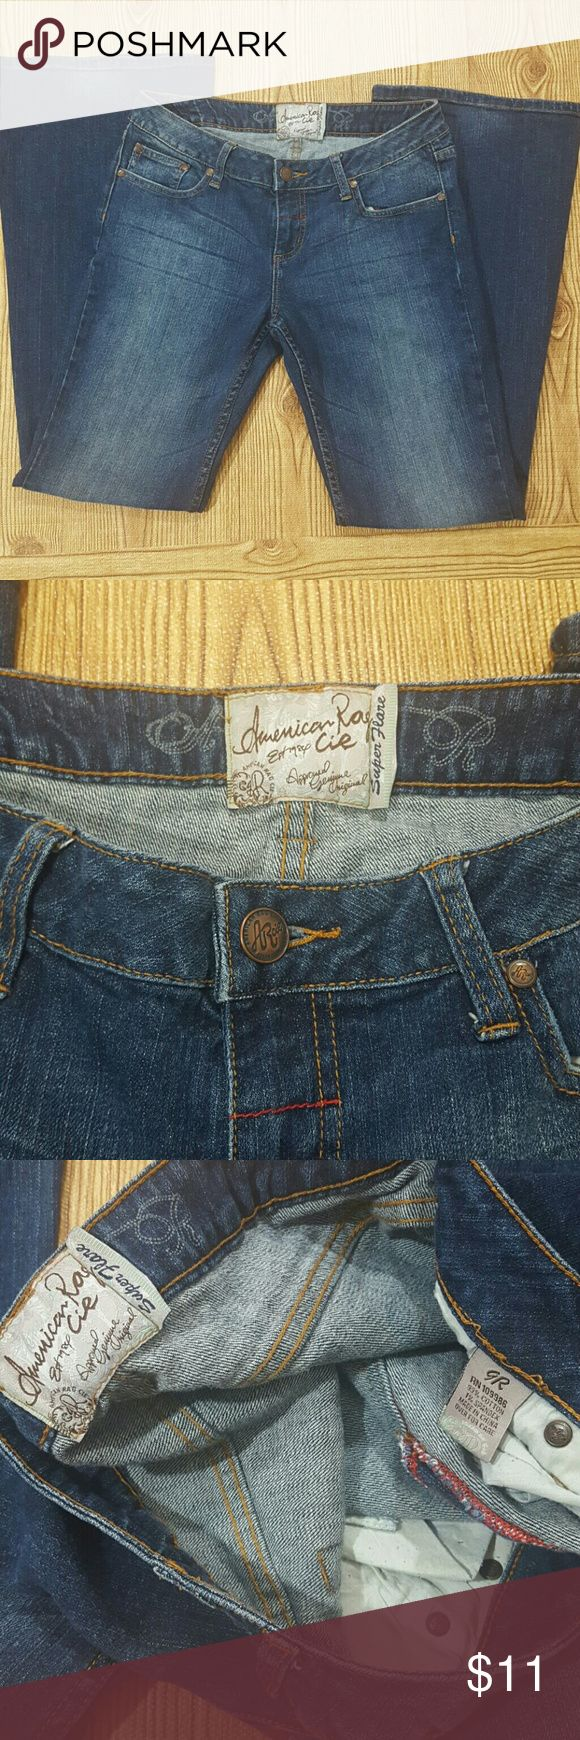 Womens American Rag jeans super flare jeans Womens American Rag jeans super flare jeans Size 9 regular  Front rise 8 inches Back Rise 12 Leg opening 10 inches  Waist  32 inches  Inseam 32 inches  Outseam 41 inches  Pants are in good  condition American Rag Jeans Flare & Wide Leg